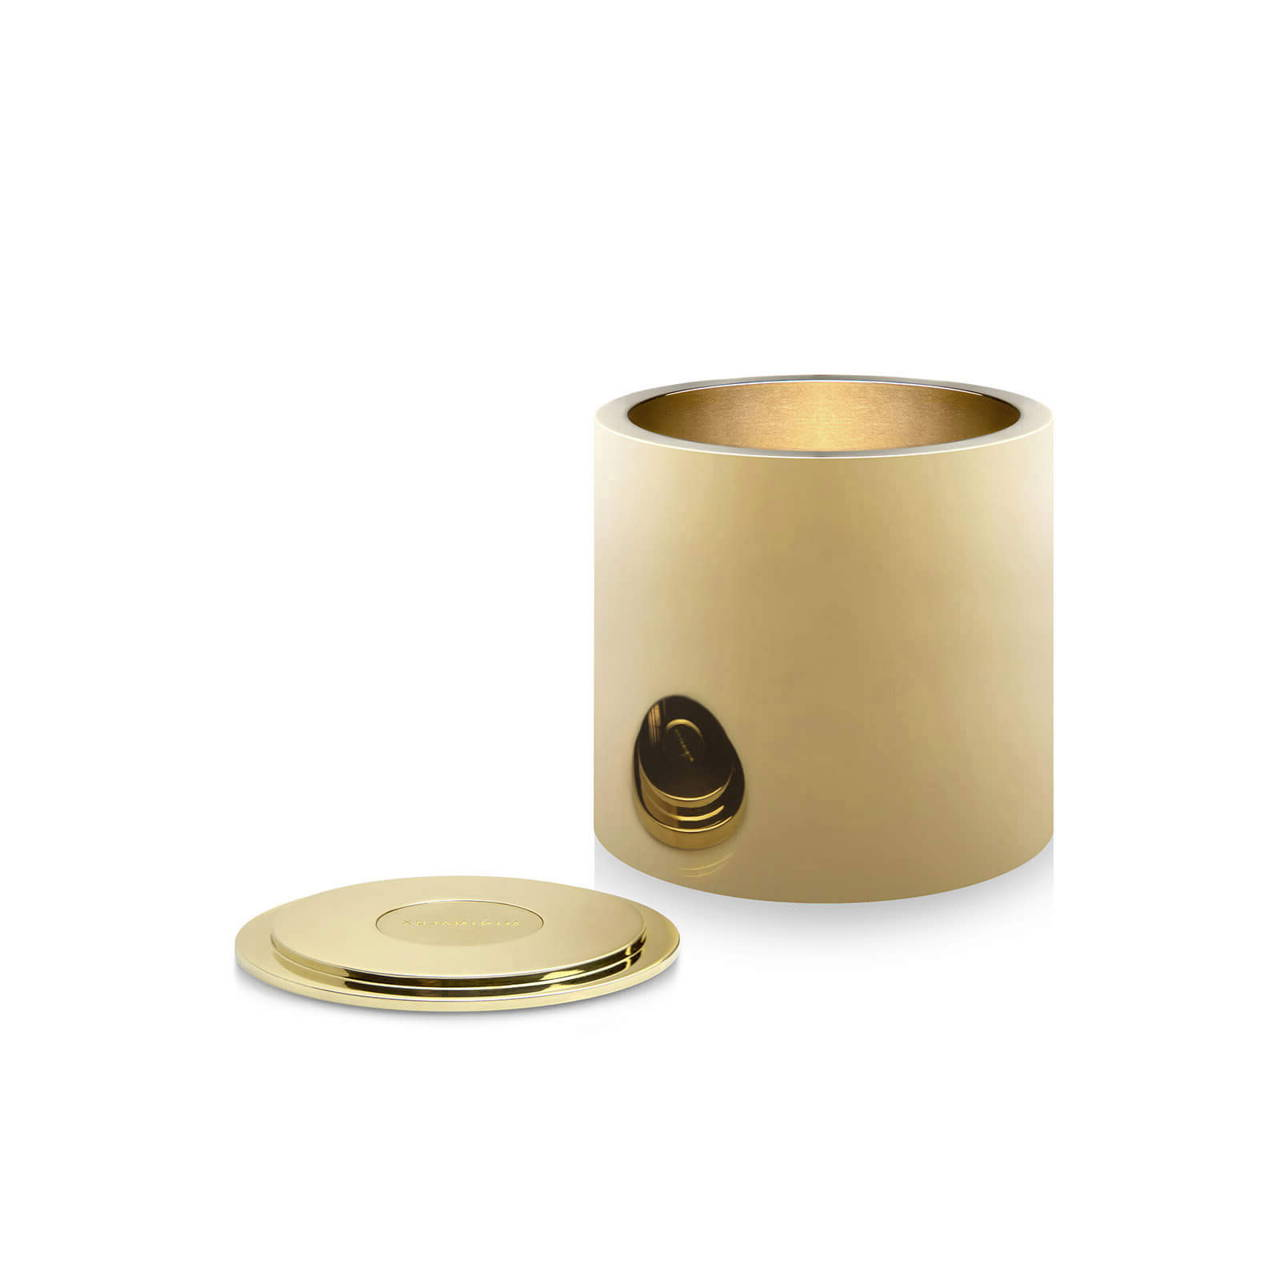 Polished Brass Pot 60 with Lid off